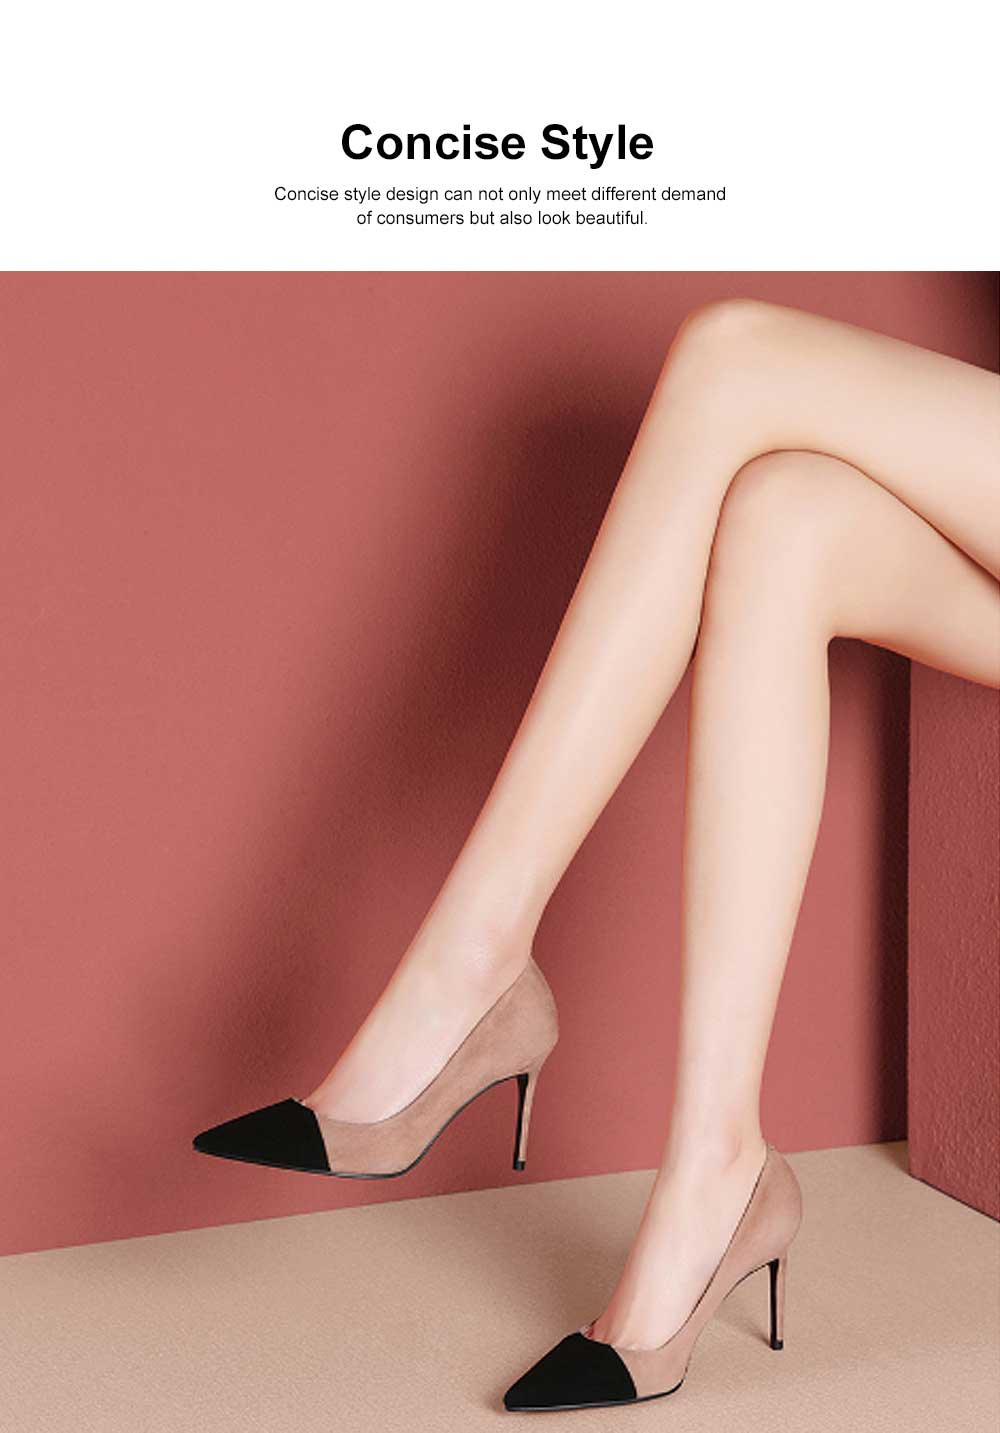 Kid Suede High-heeled Shoes for Women, Nude Black Concise Style High Heels, Pointed Design Gum-rubber Outsole Sandals 1